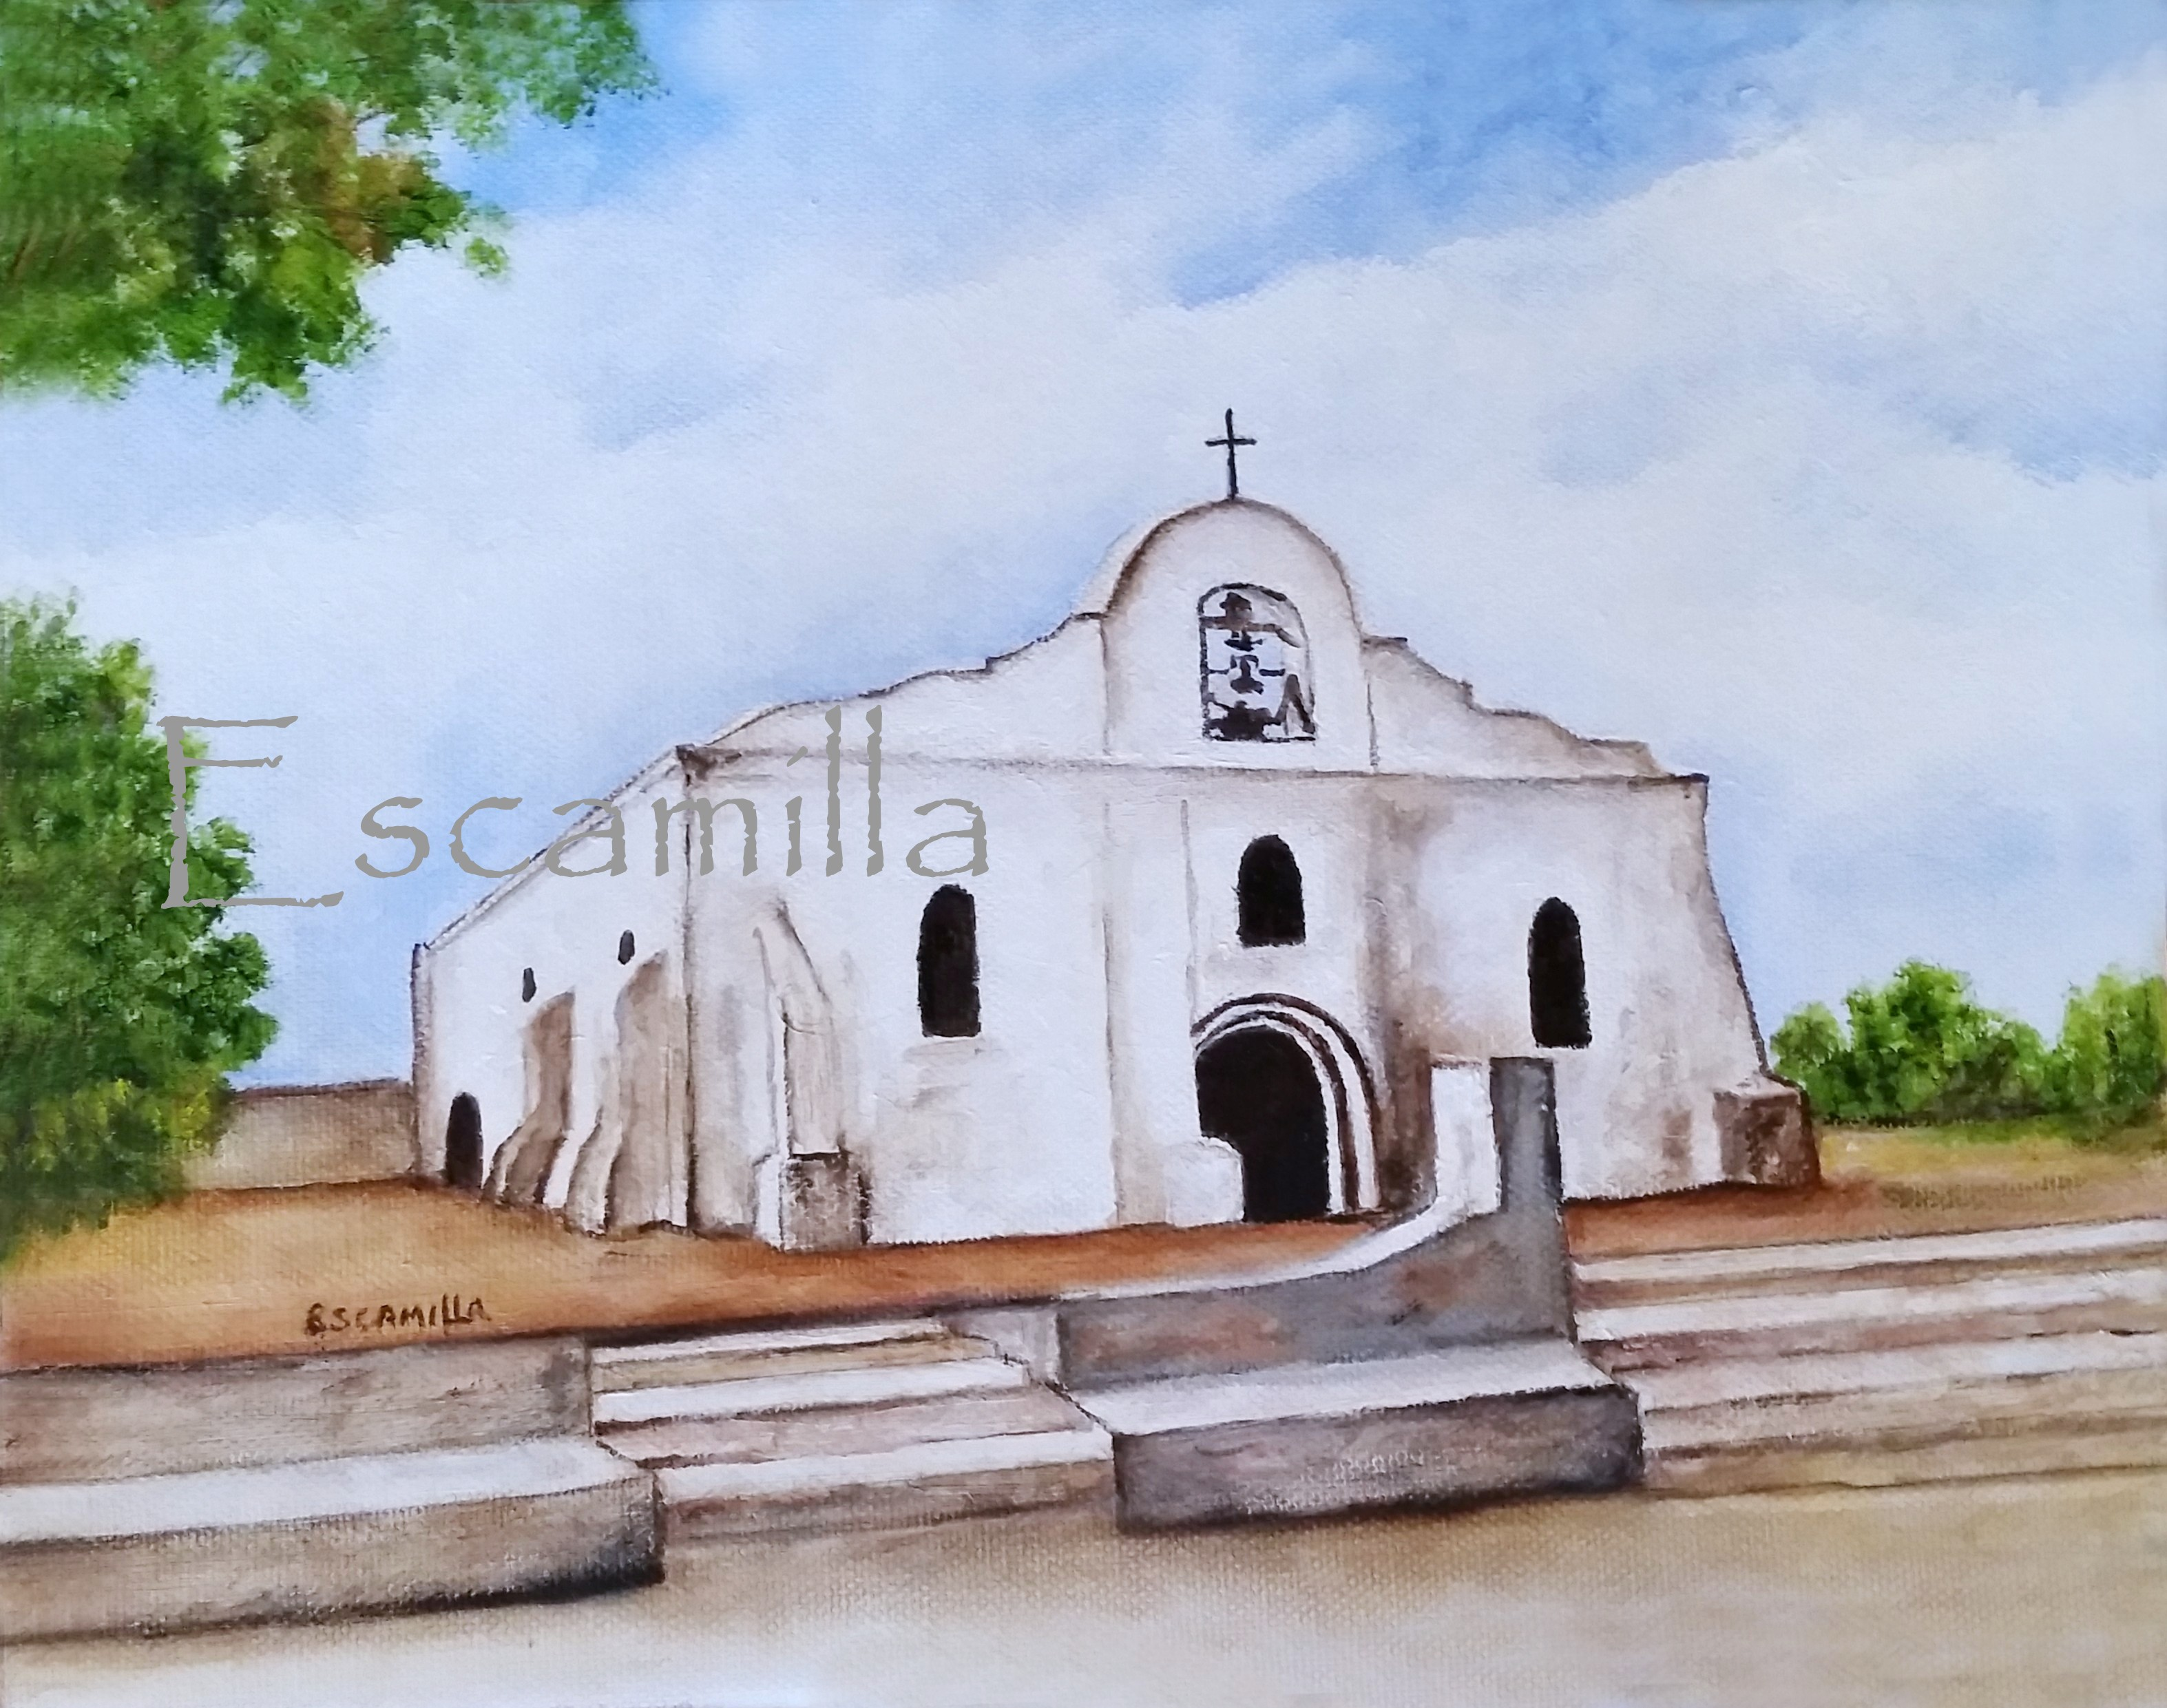 San_elizario_fb_2015_lighter